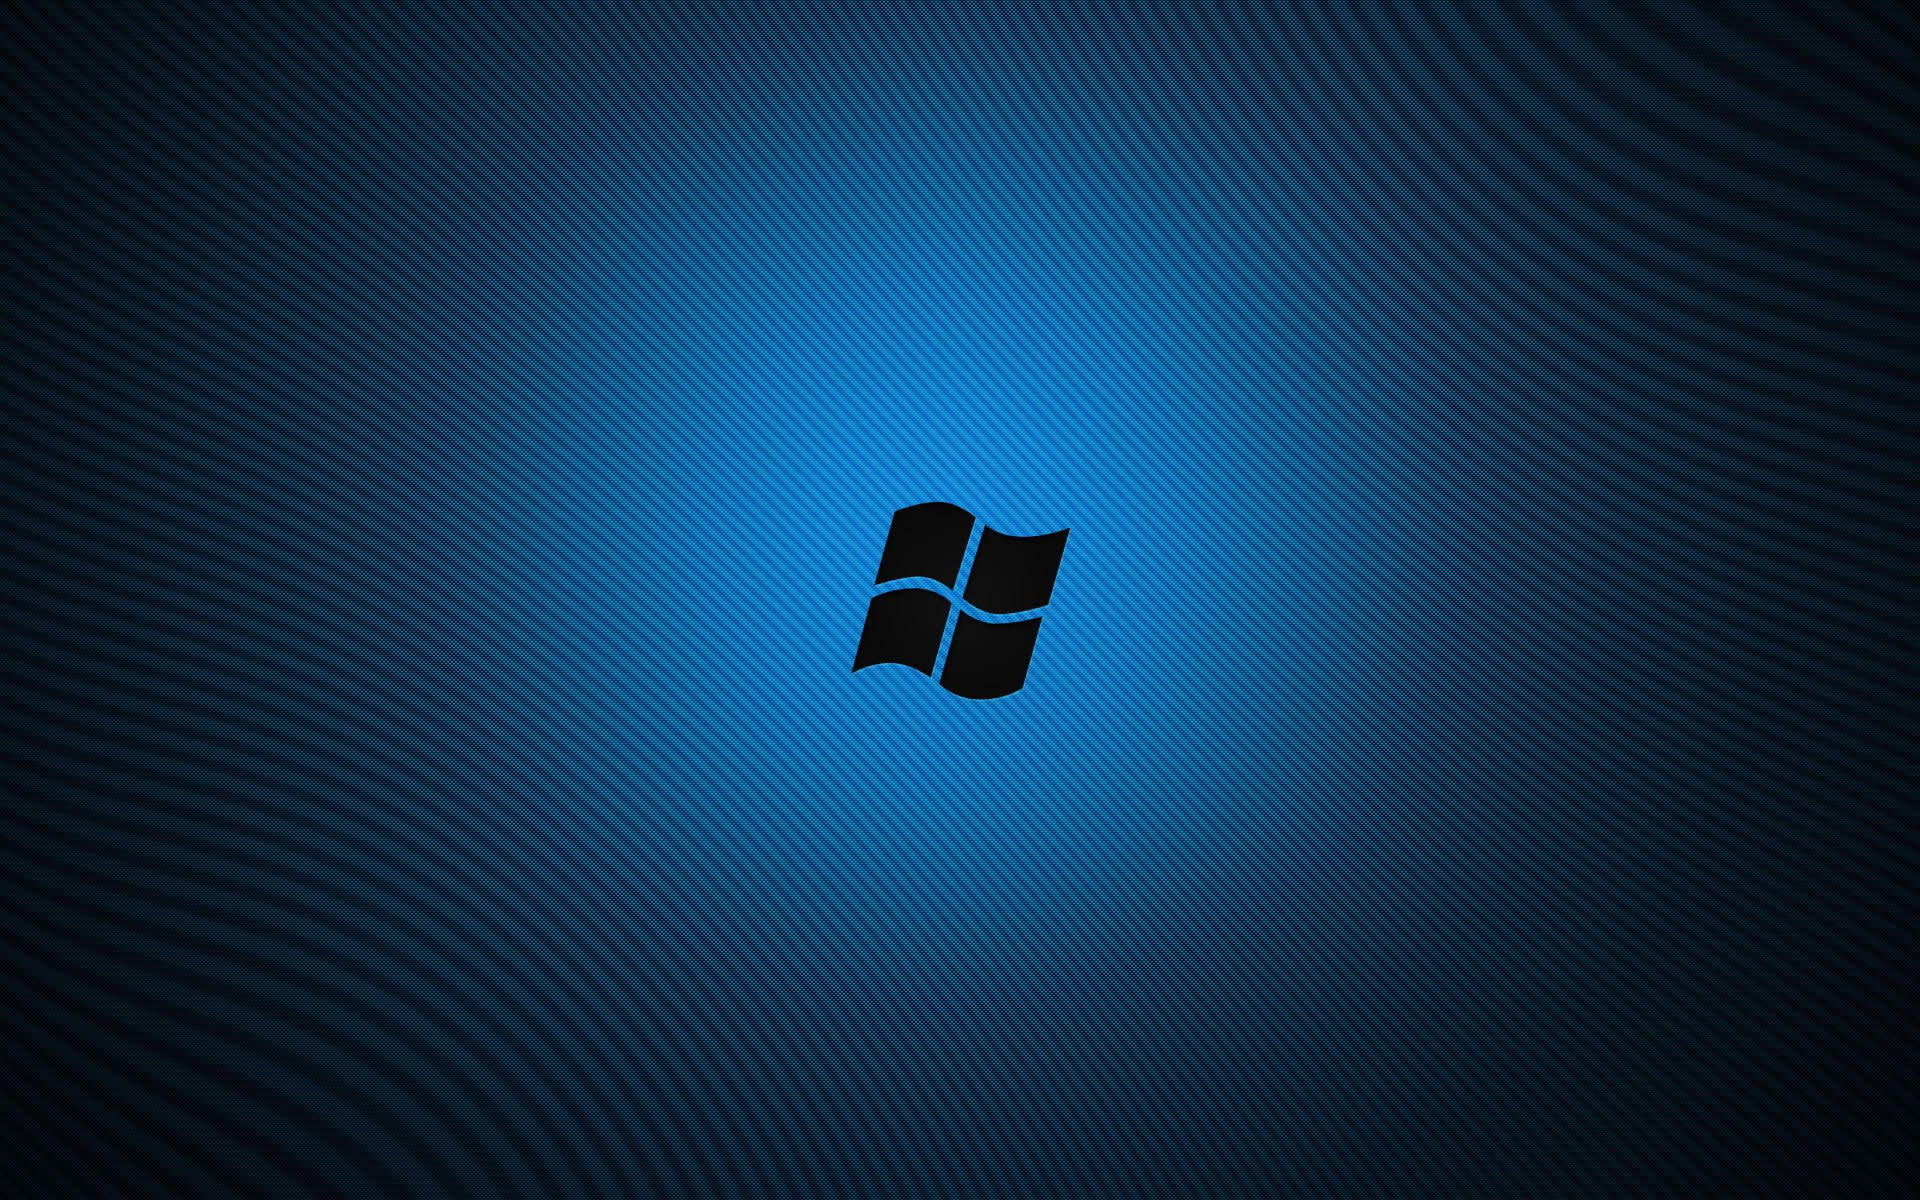 D Windows Wallpaper Windows Seven Computers Wallpapers In Jpg Computer Wallpaper Windows Wallpaper Minimal Wallpaper